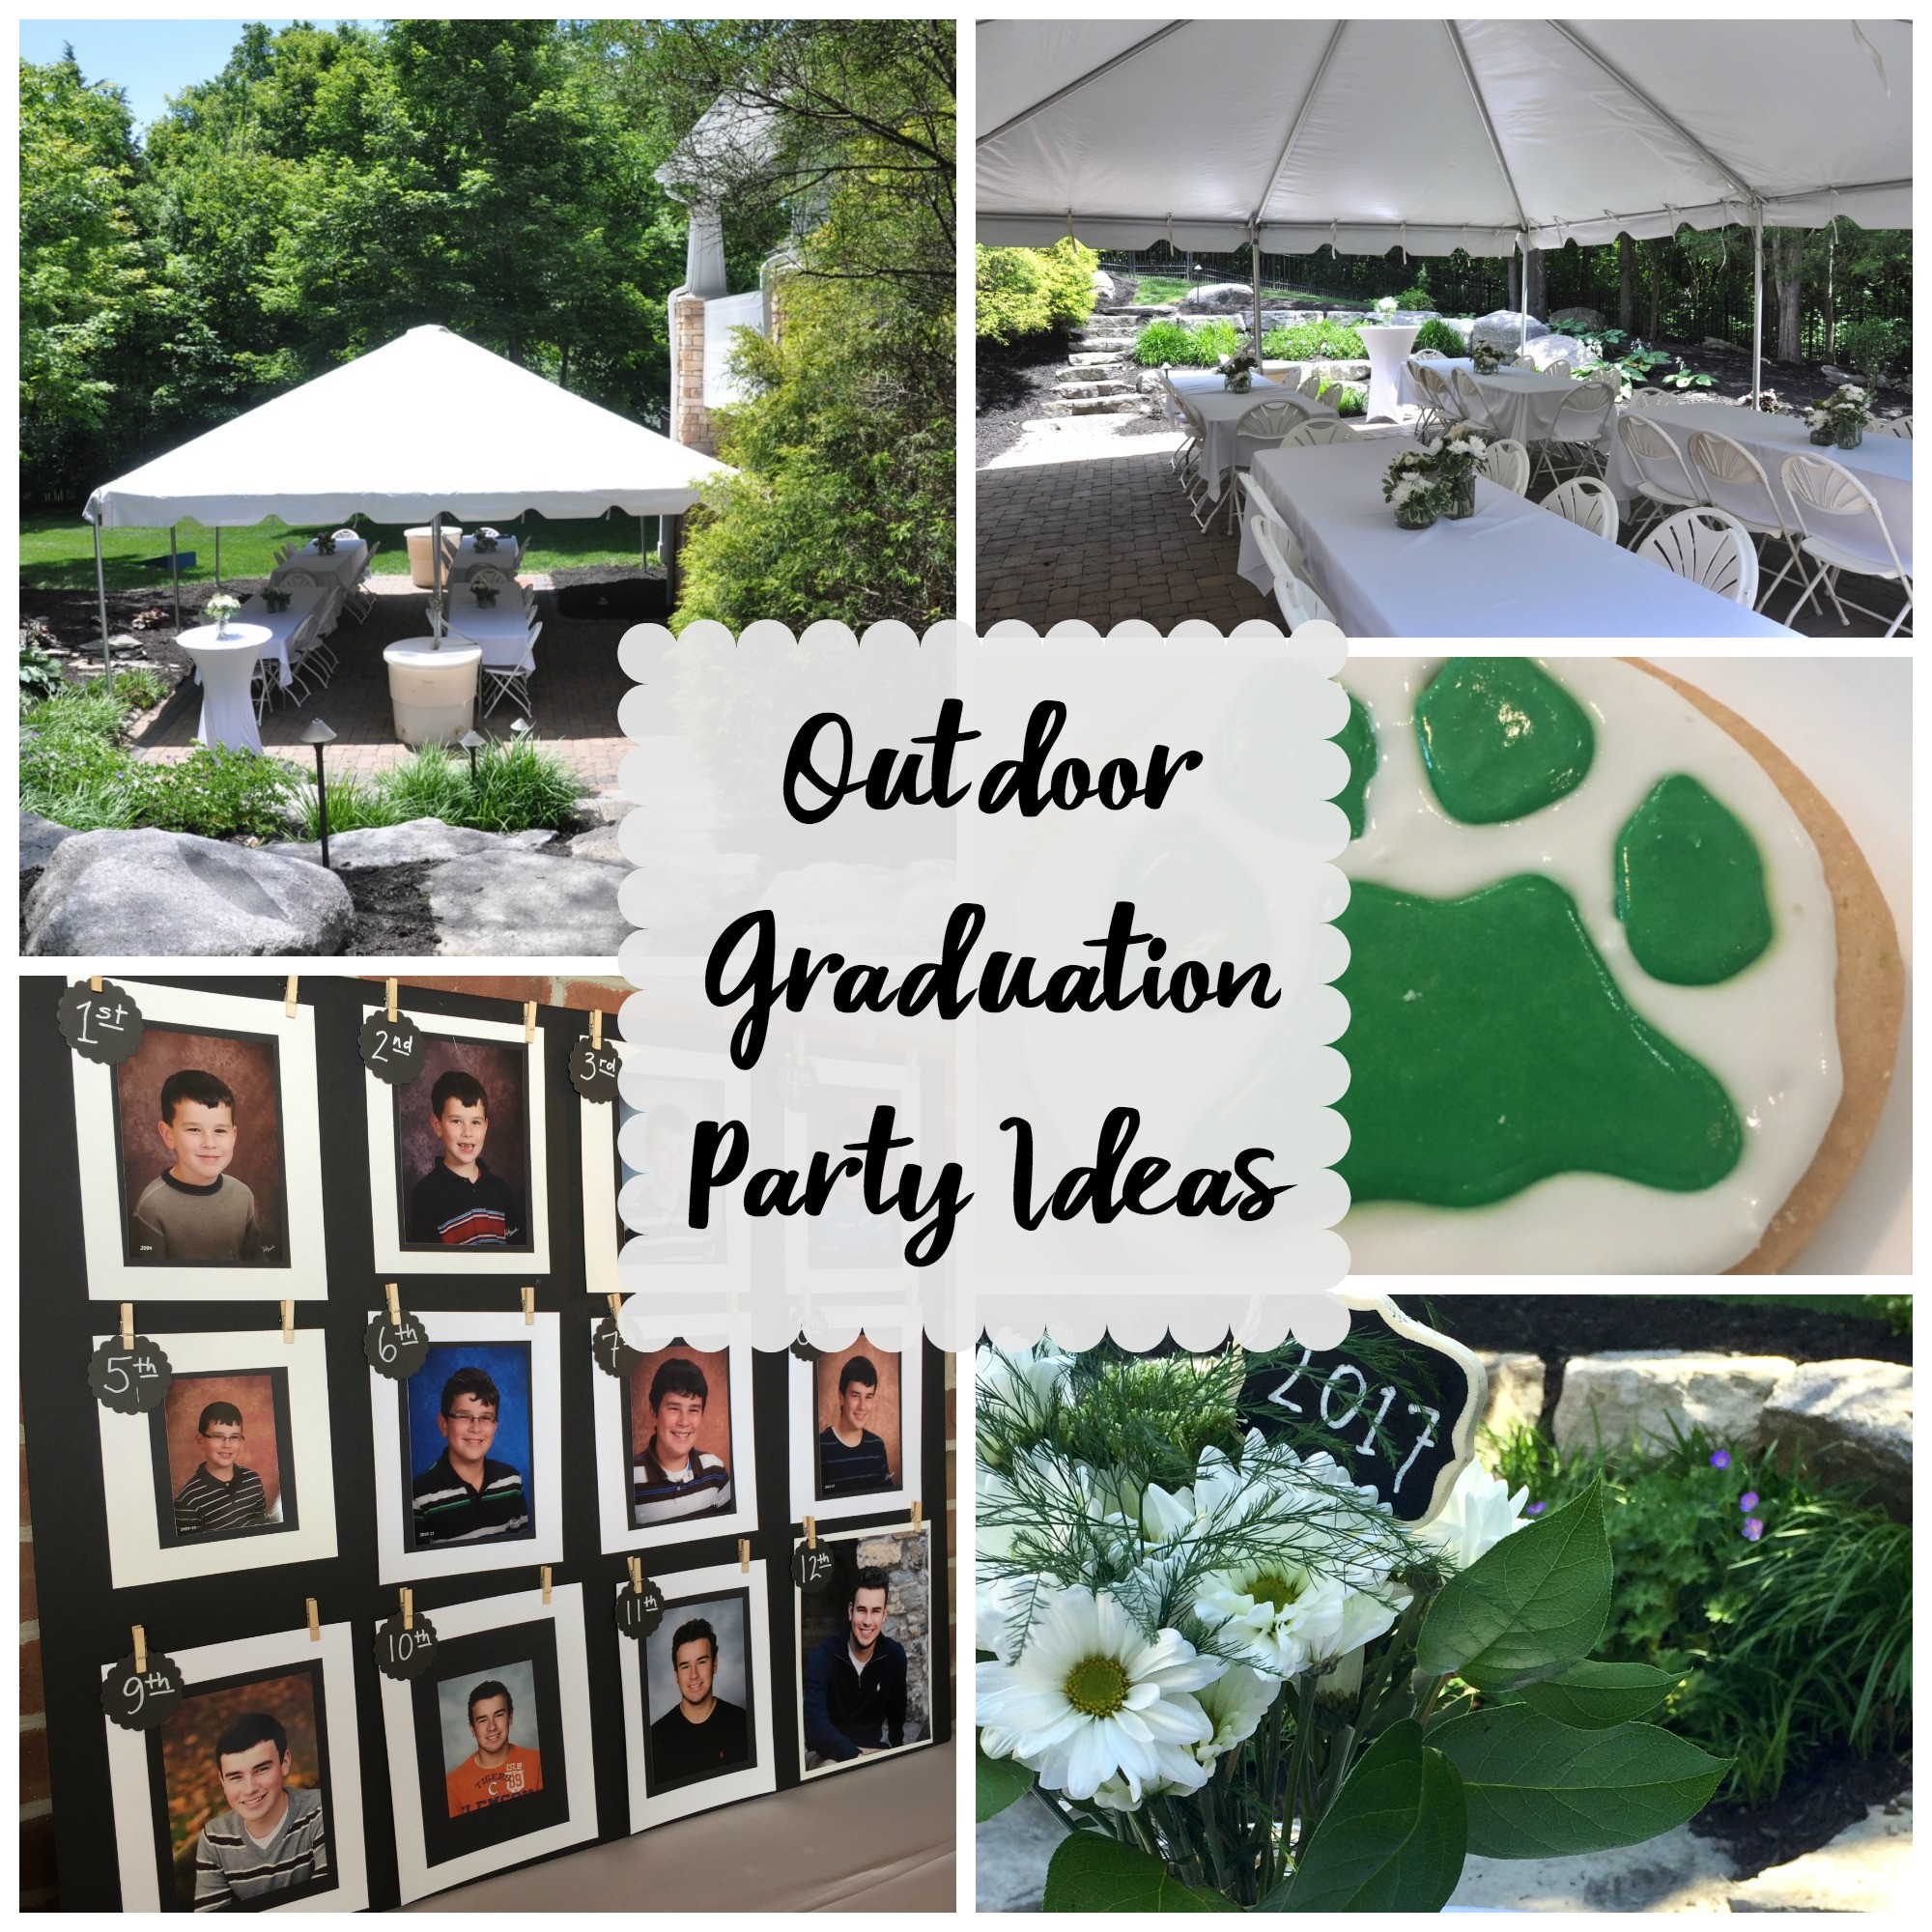 Backyard Party Ideas For Graduation  Outdoor Graduation Party Evolution of Style